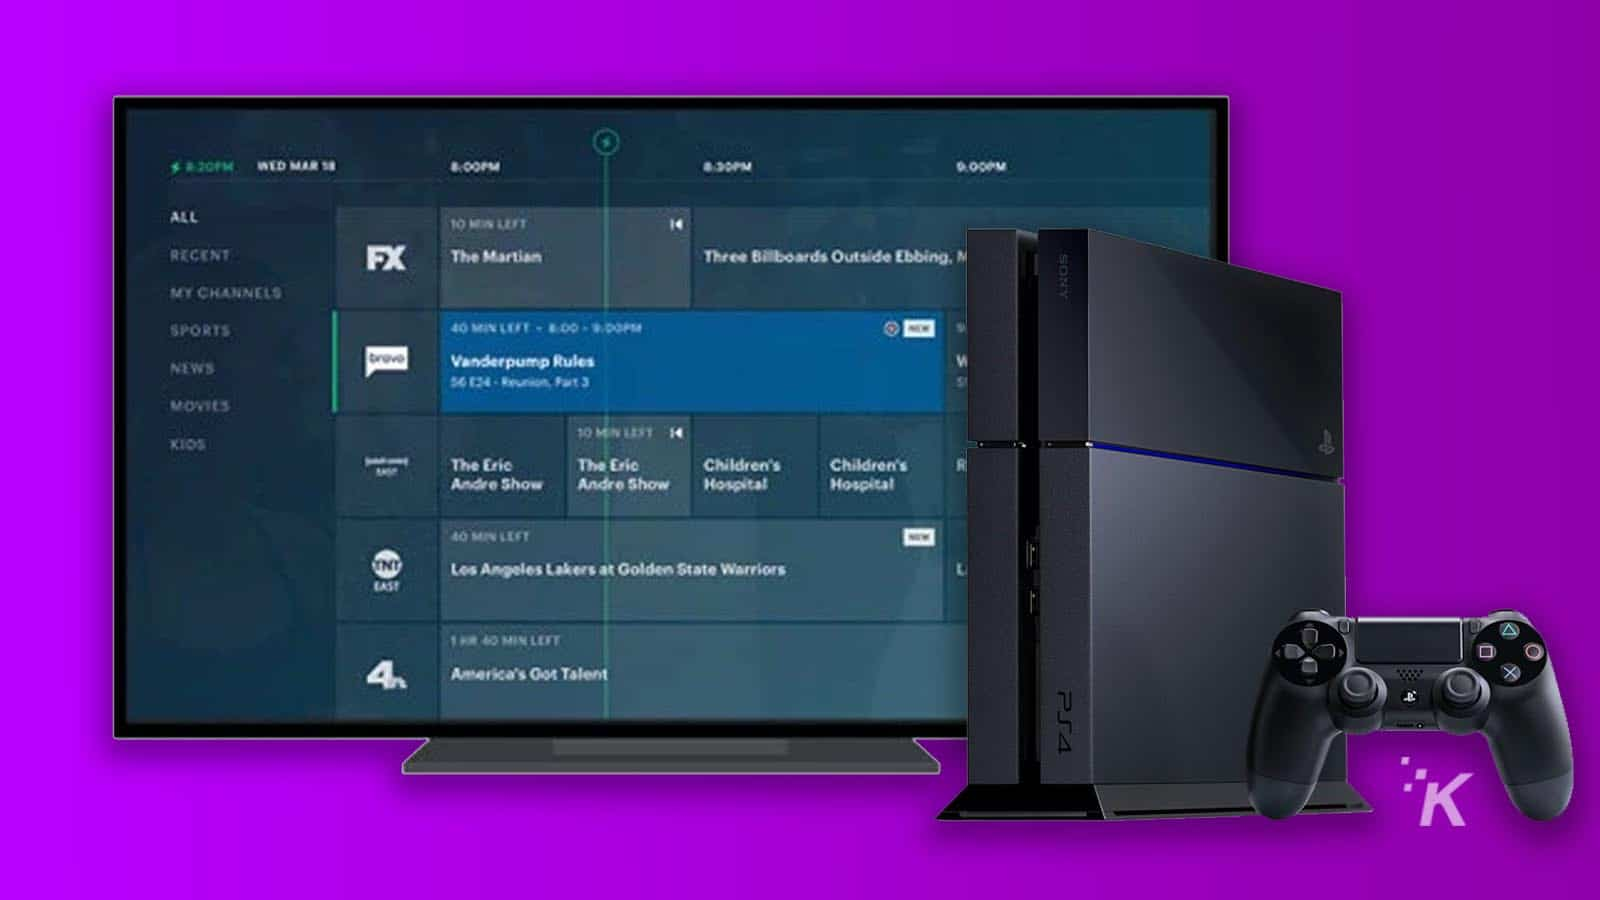 hulu with live tv on playstation 4